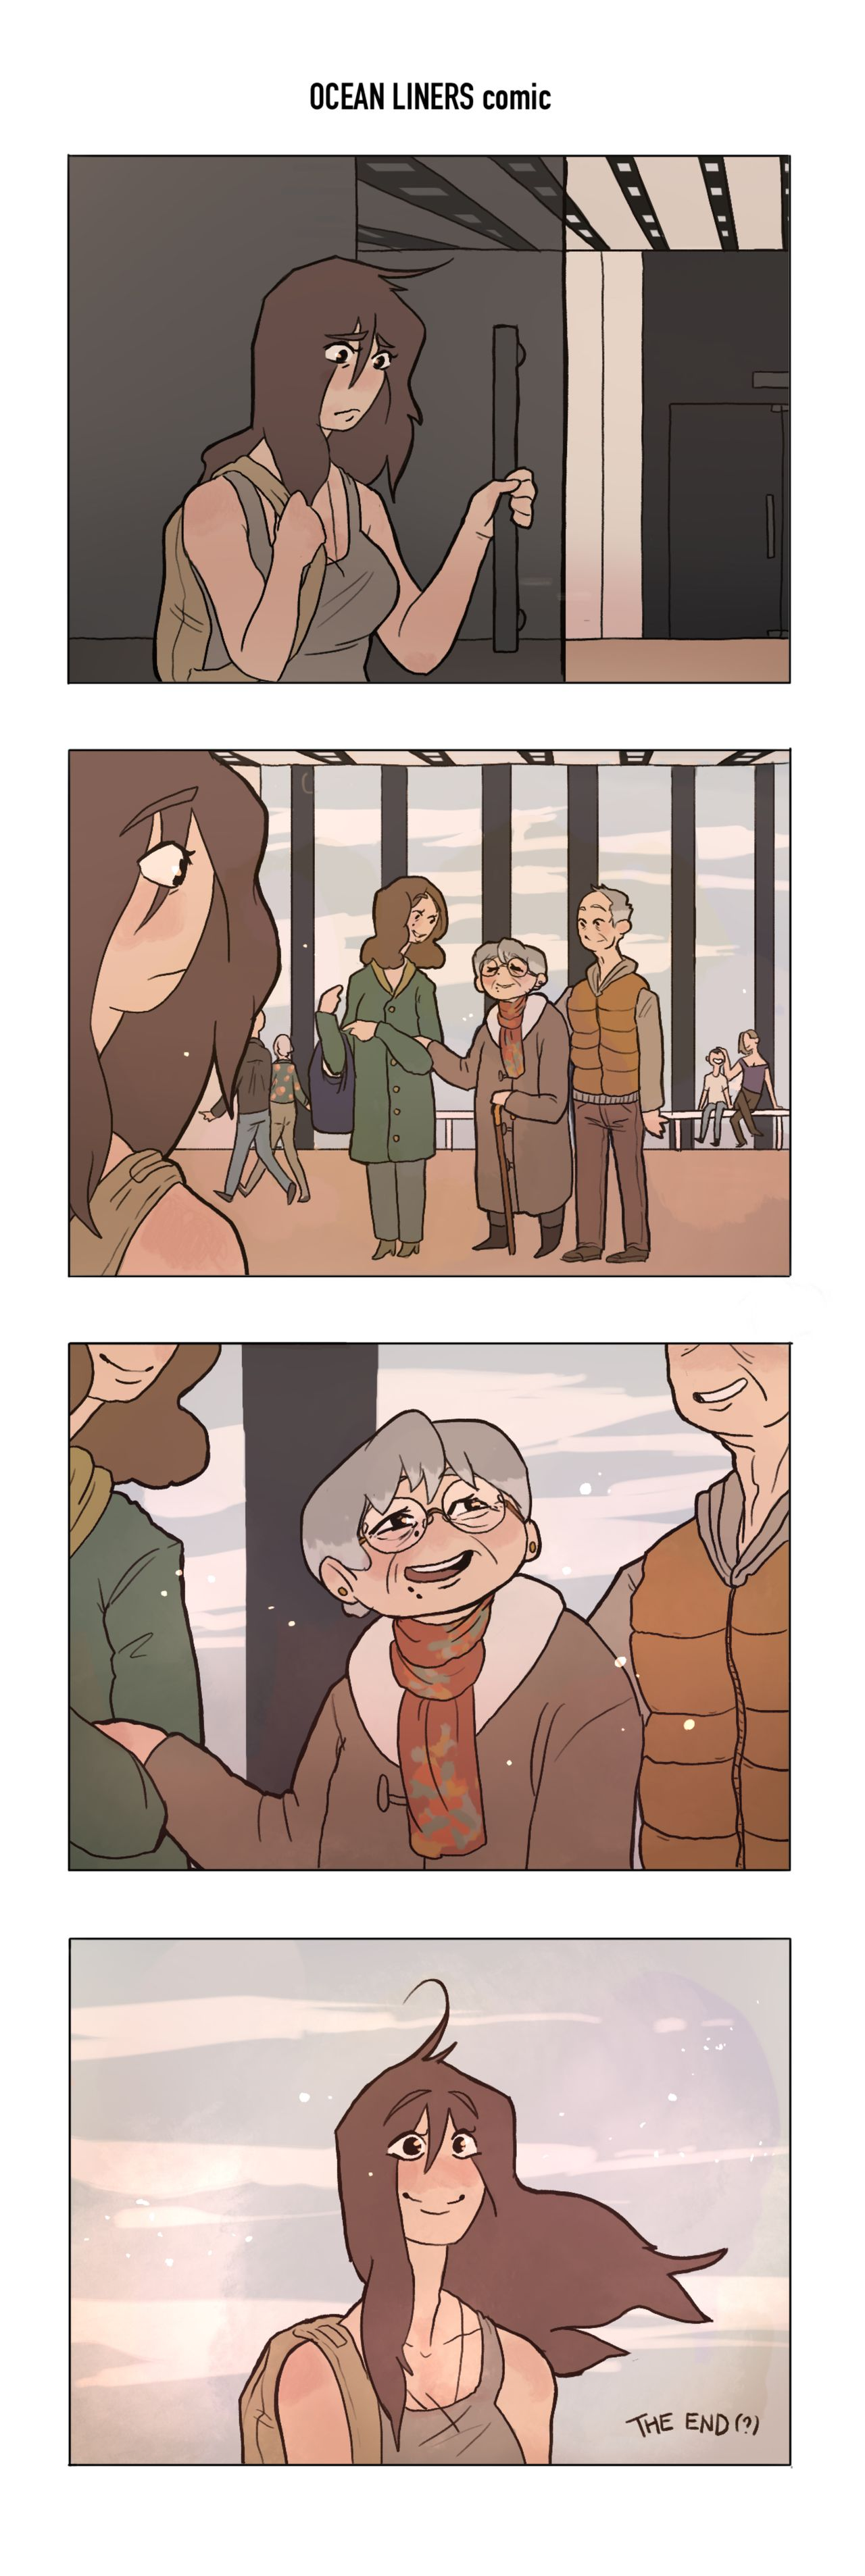 A stacked four-panel webcomic. The top panel shows a slightly sad person leaving an exhibition after their flight of fancy ended, realising it was fantasy. The second panel show them seeing an elderly couple in the museum with the older woman holding the arm with a younger one. The third panel is a close-up of the older lady who is smiling and happy, wearing a scarf with the same print as a dress worn by the little girl in the fantasy section of the earlier strip. The final panel is back to our protagonist who is now happy and serene.